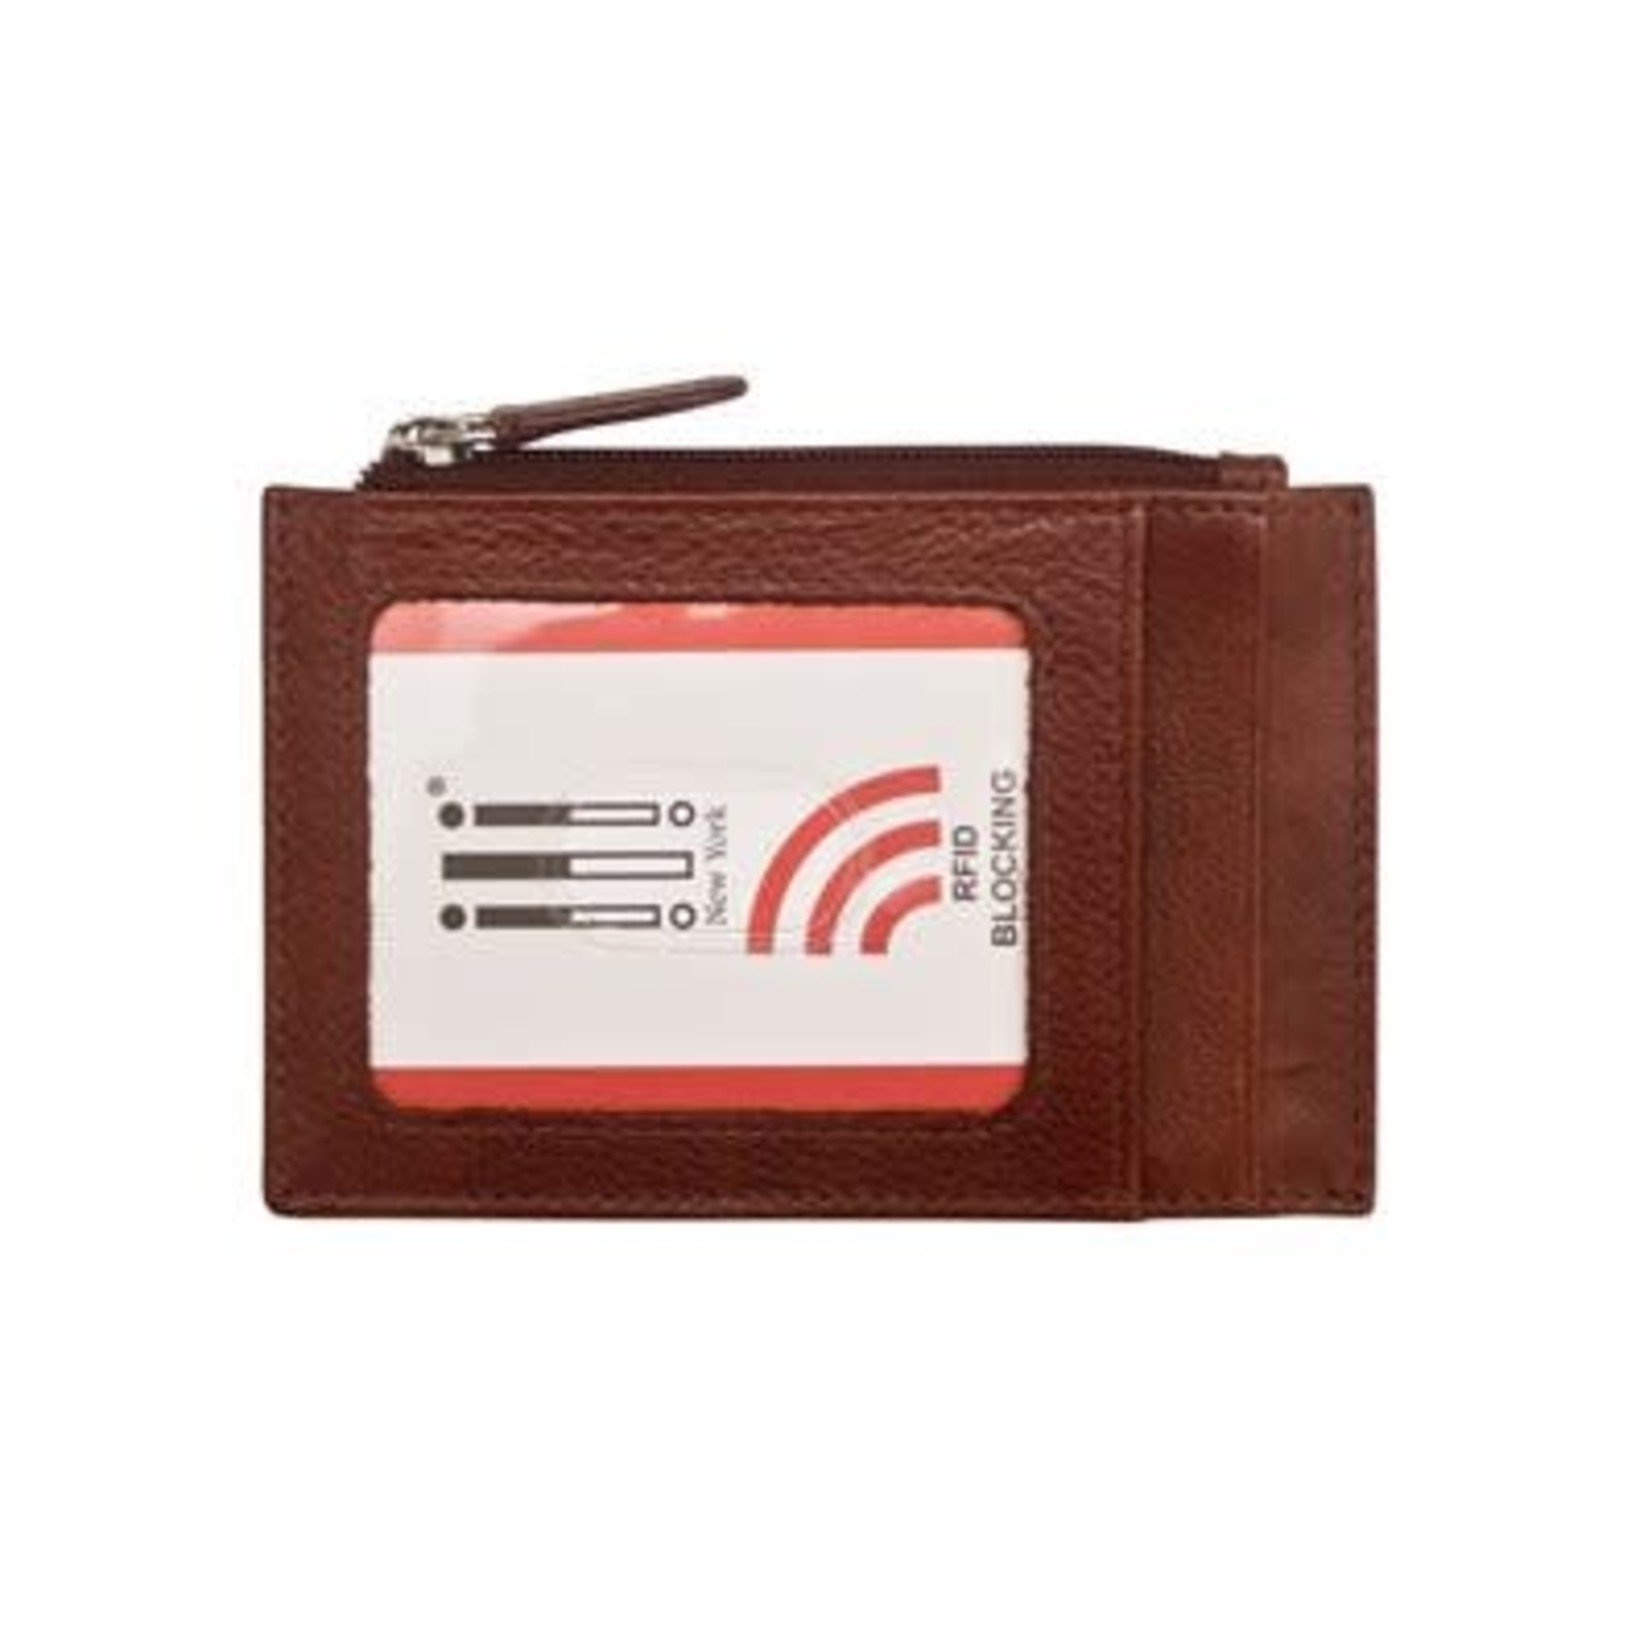 Leather Handbags and Accessories 7416 Redwood - RFID Card Holder